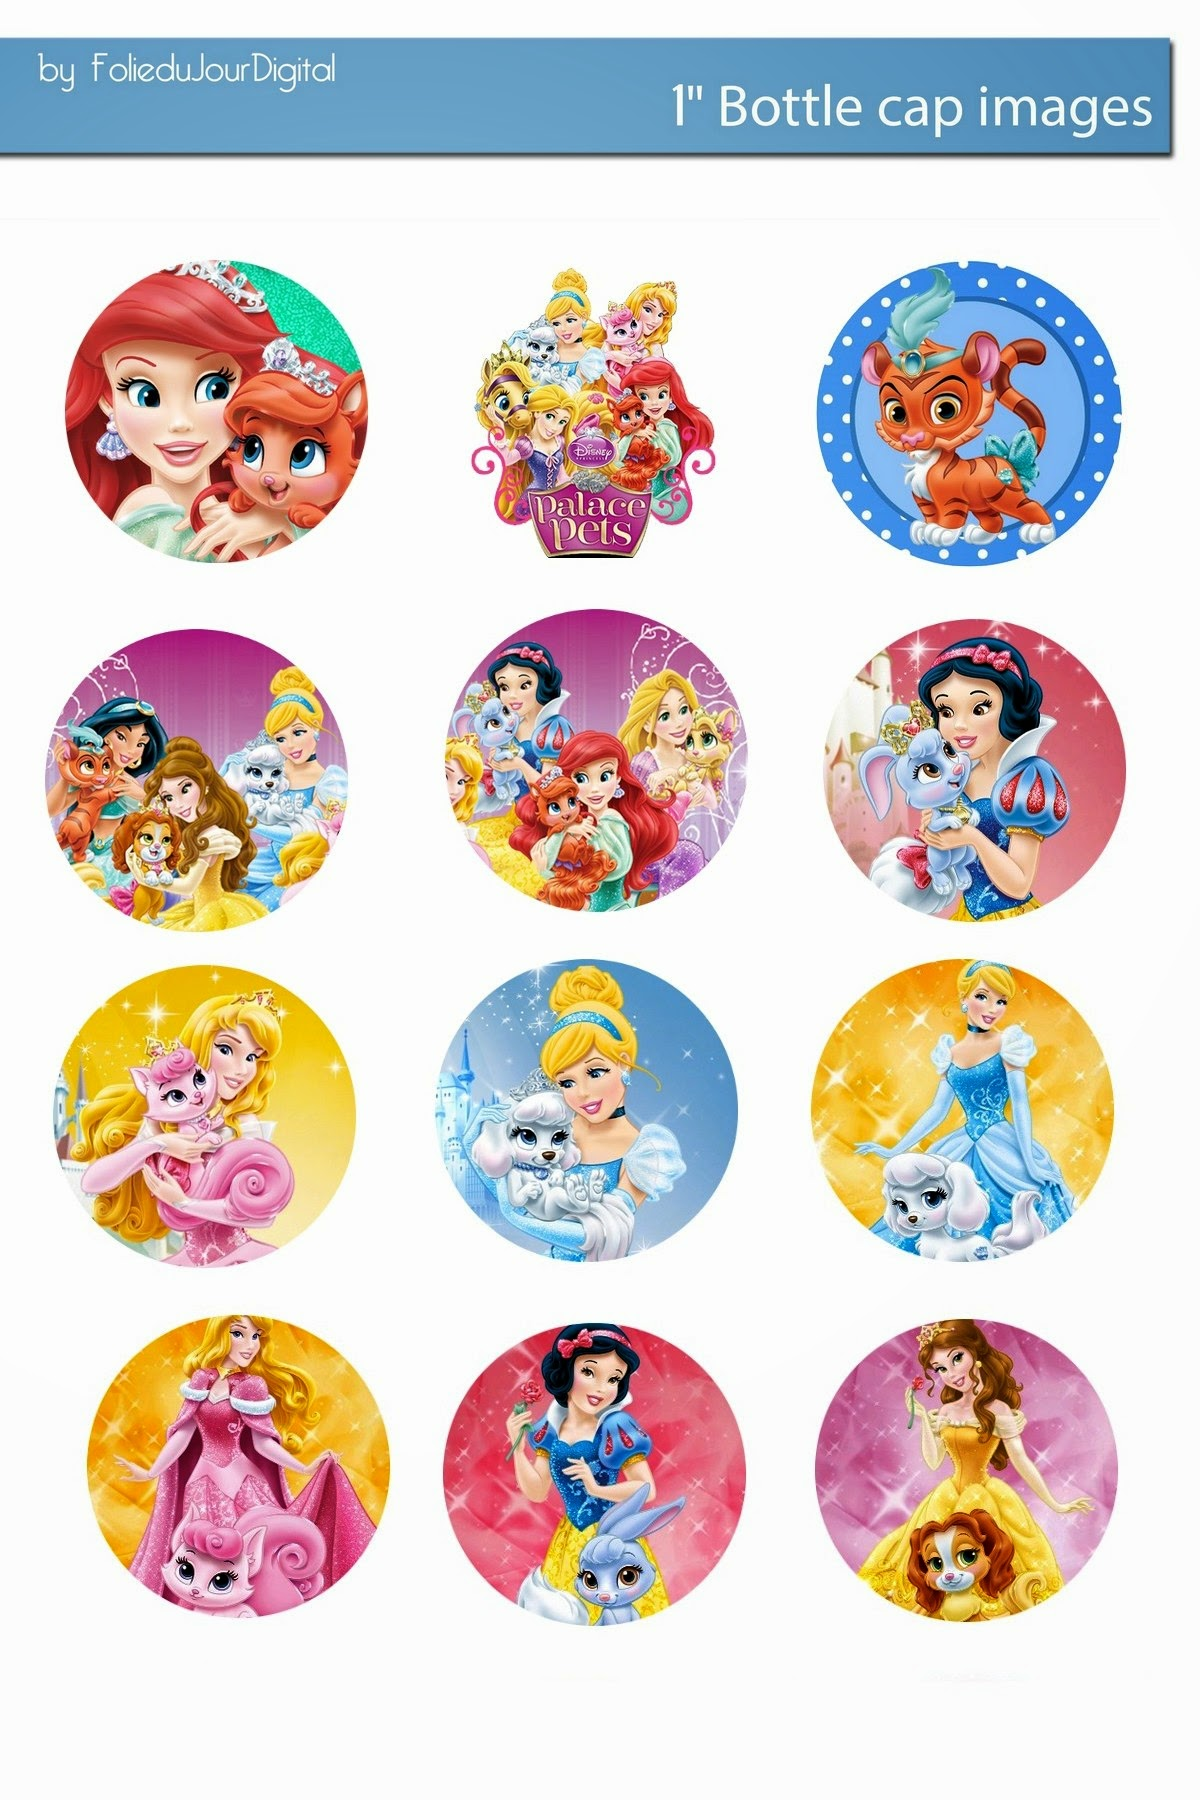 free bottle cap images disney palace pets and princess